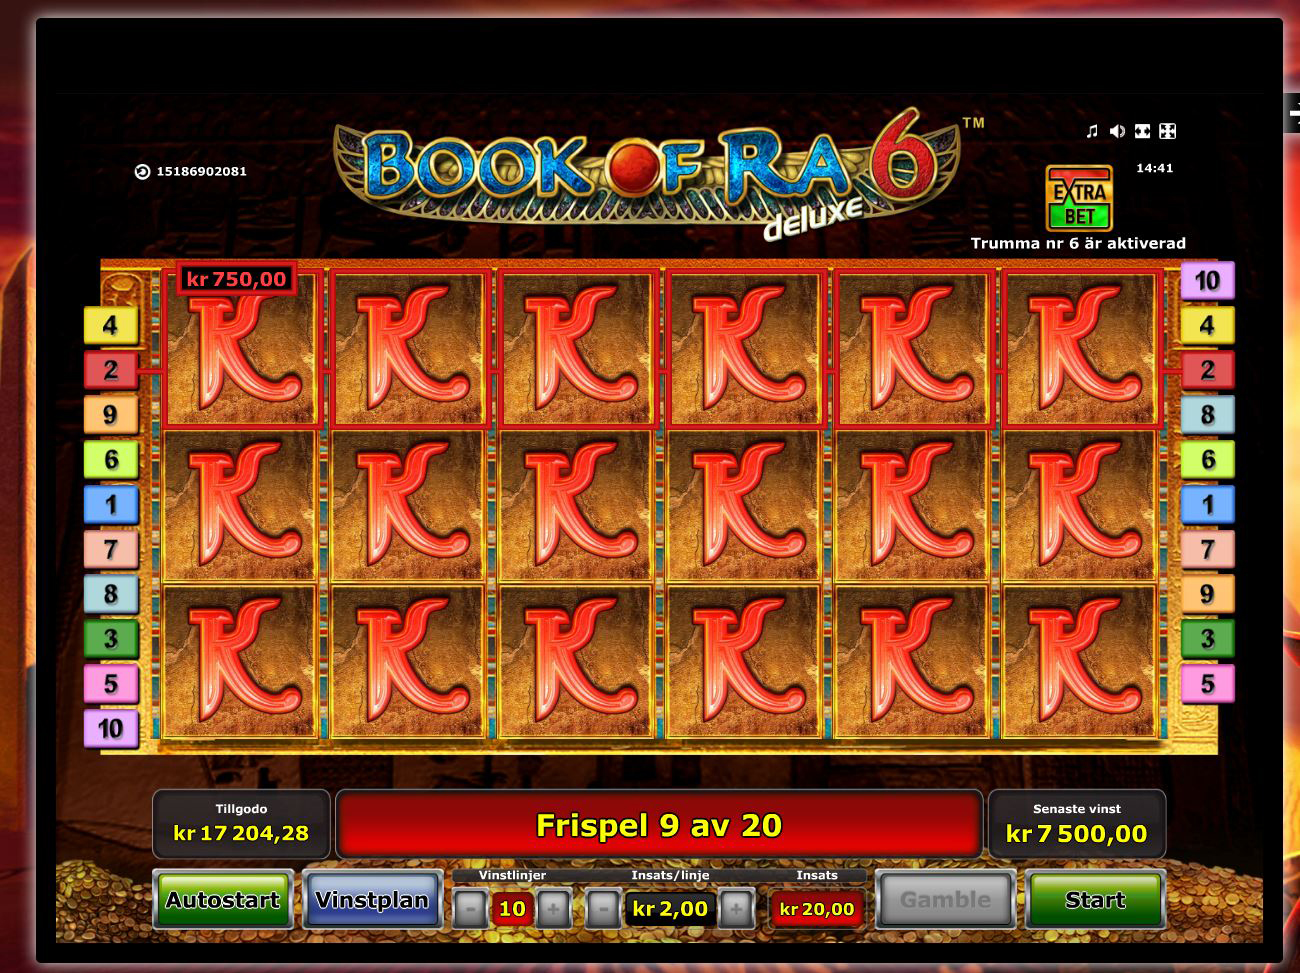 casino online bonus casino oyunlari book of ra